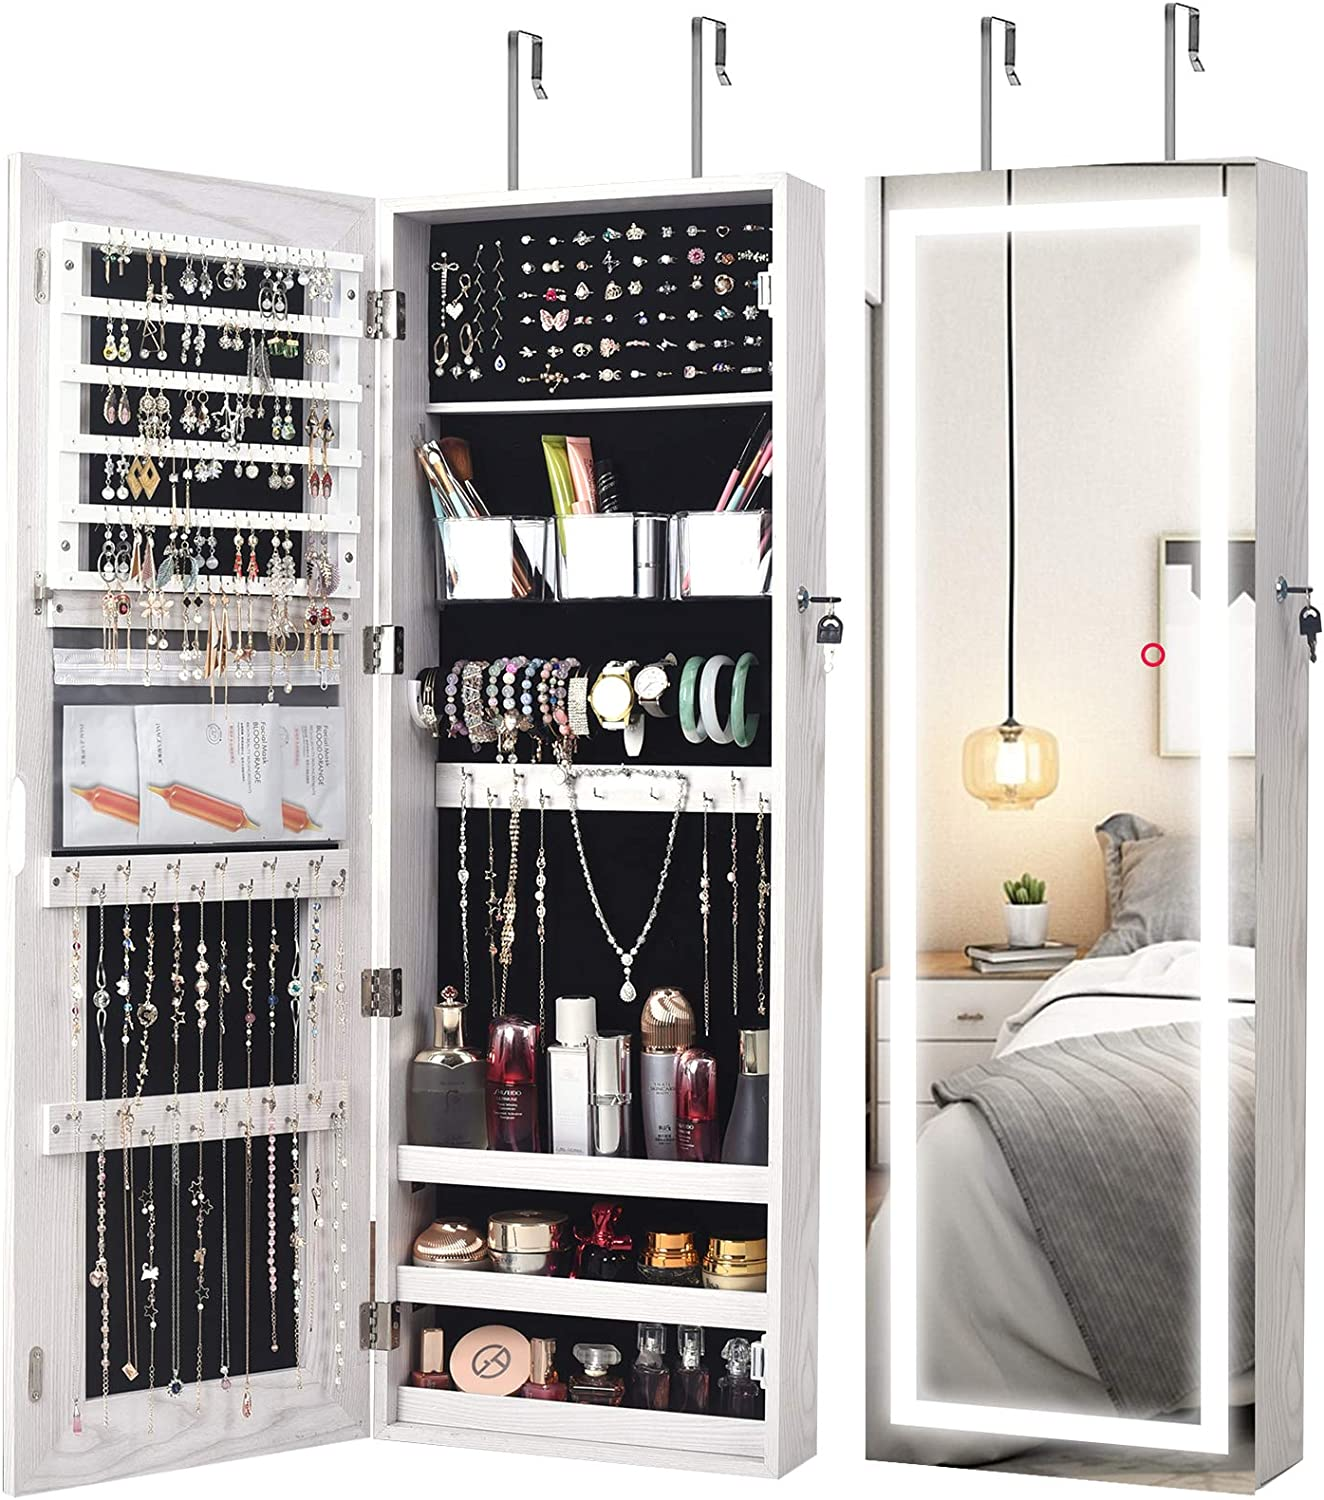 AOOU Jewelry Organizer Hanging Wall Mounted Jewelry Armoire,Full Length  Mirror LED Lock Door Jewelry Cabinet with Best Intelligent Switch & Large  ...